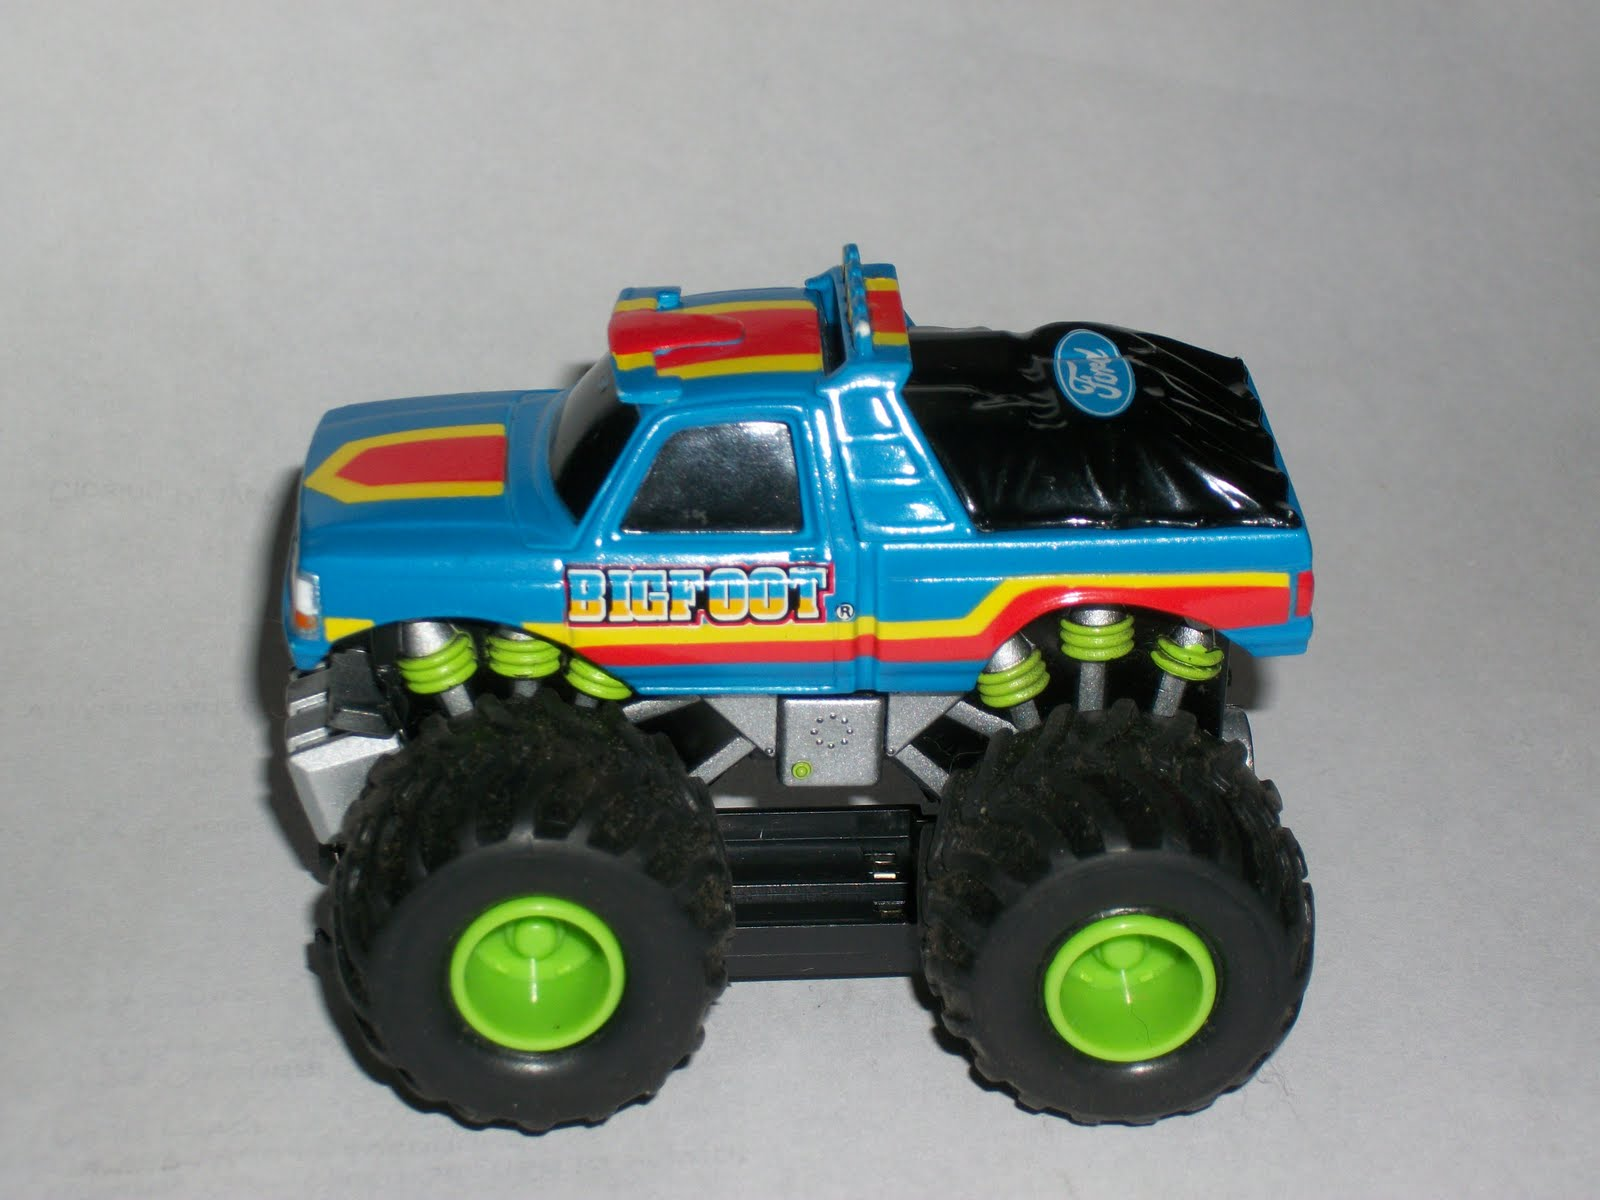 pin monster truck toys bigfoot on pinterest. Black Bedroom Furniture Sets. Home Design Ideas